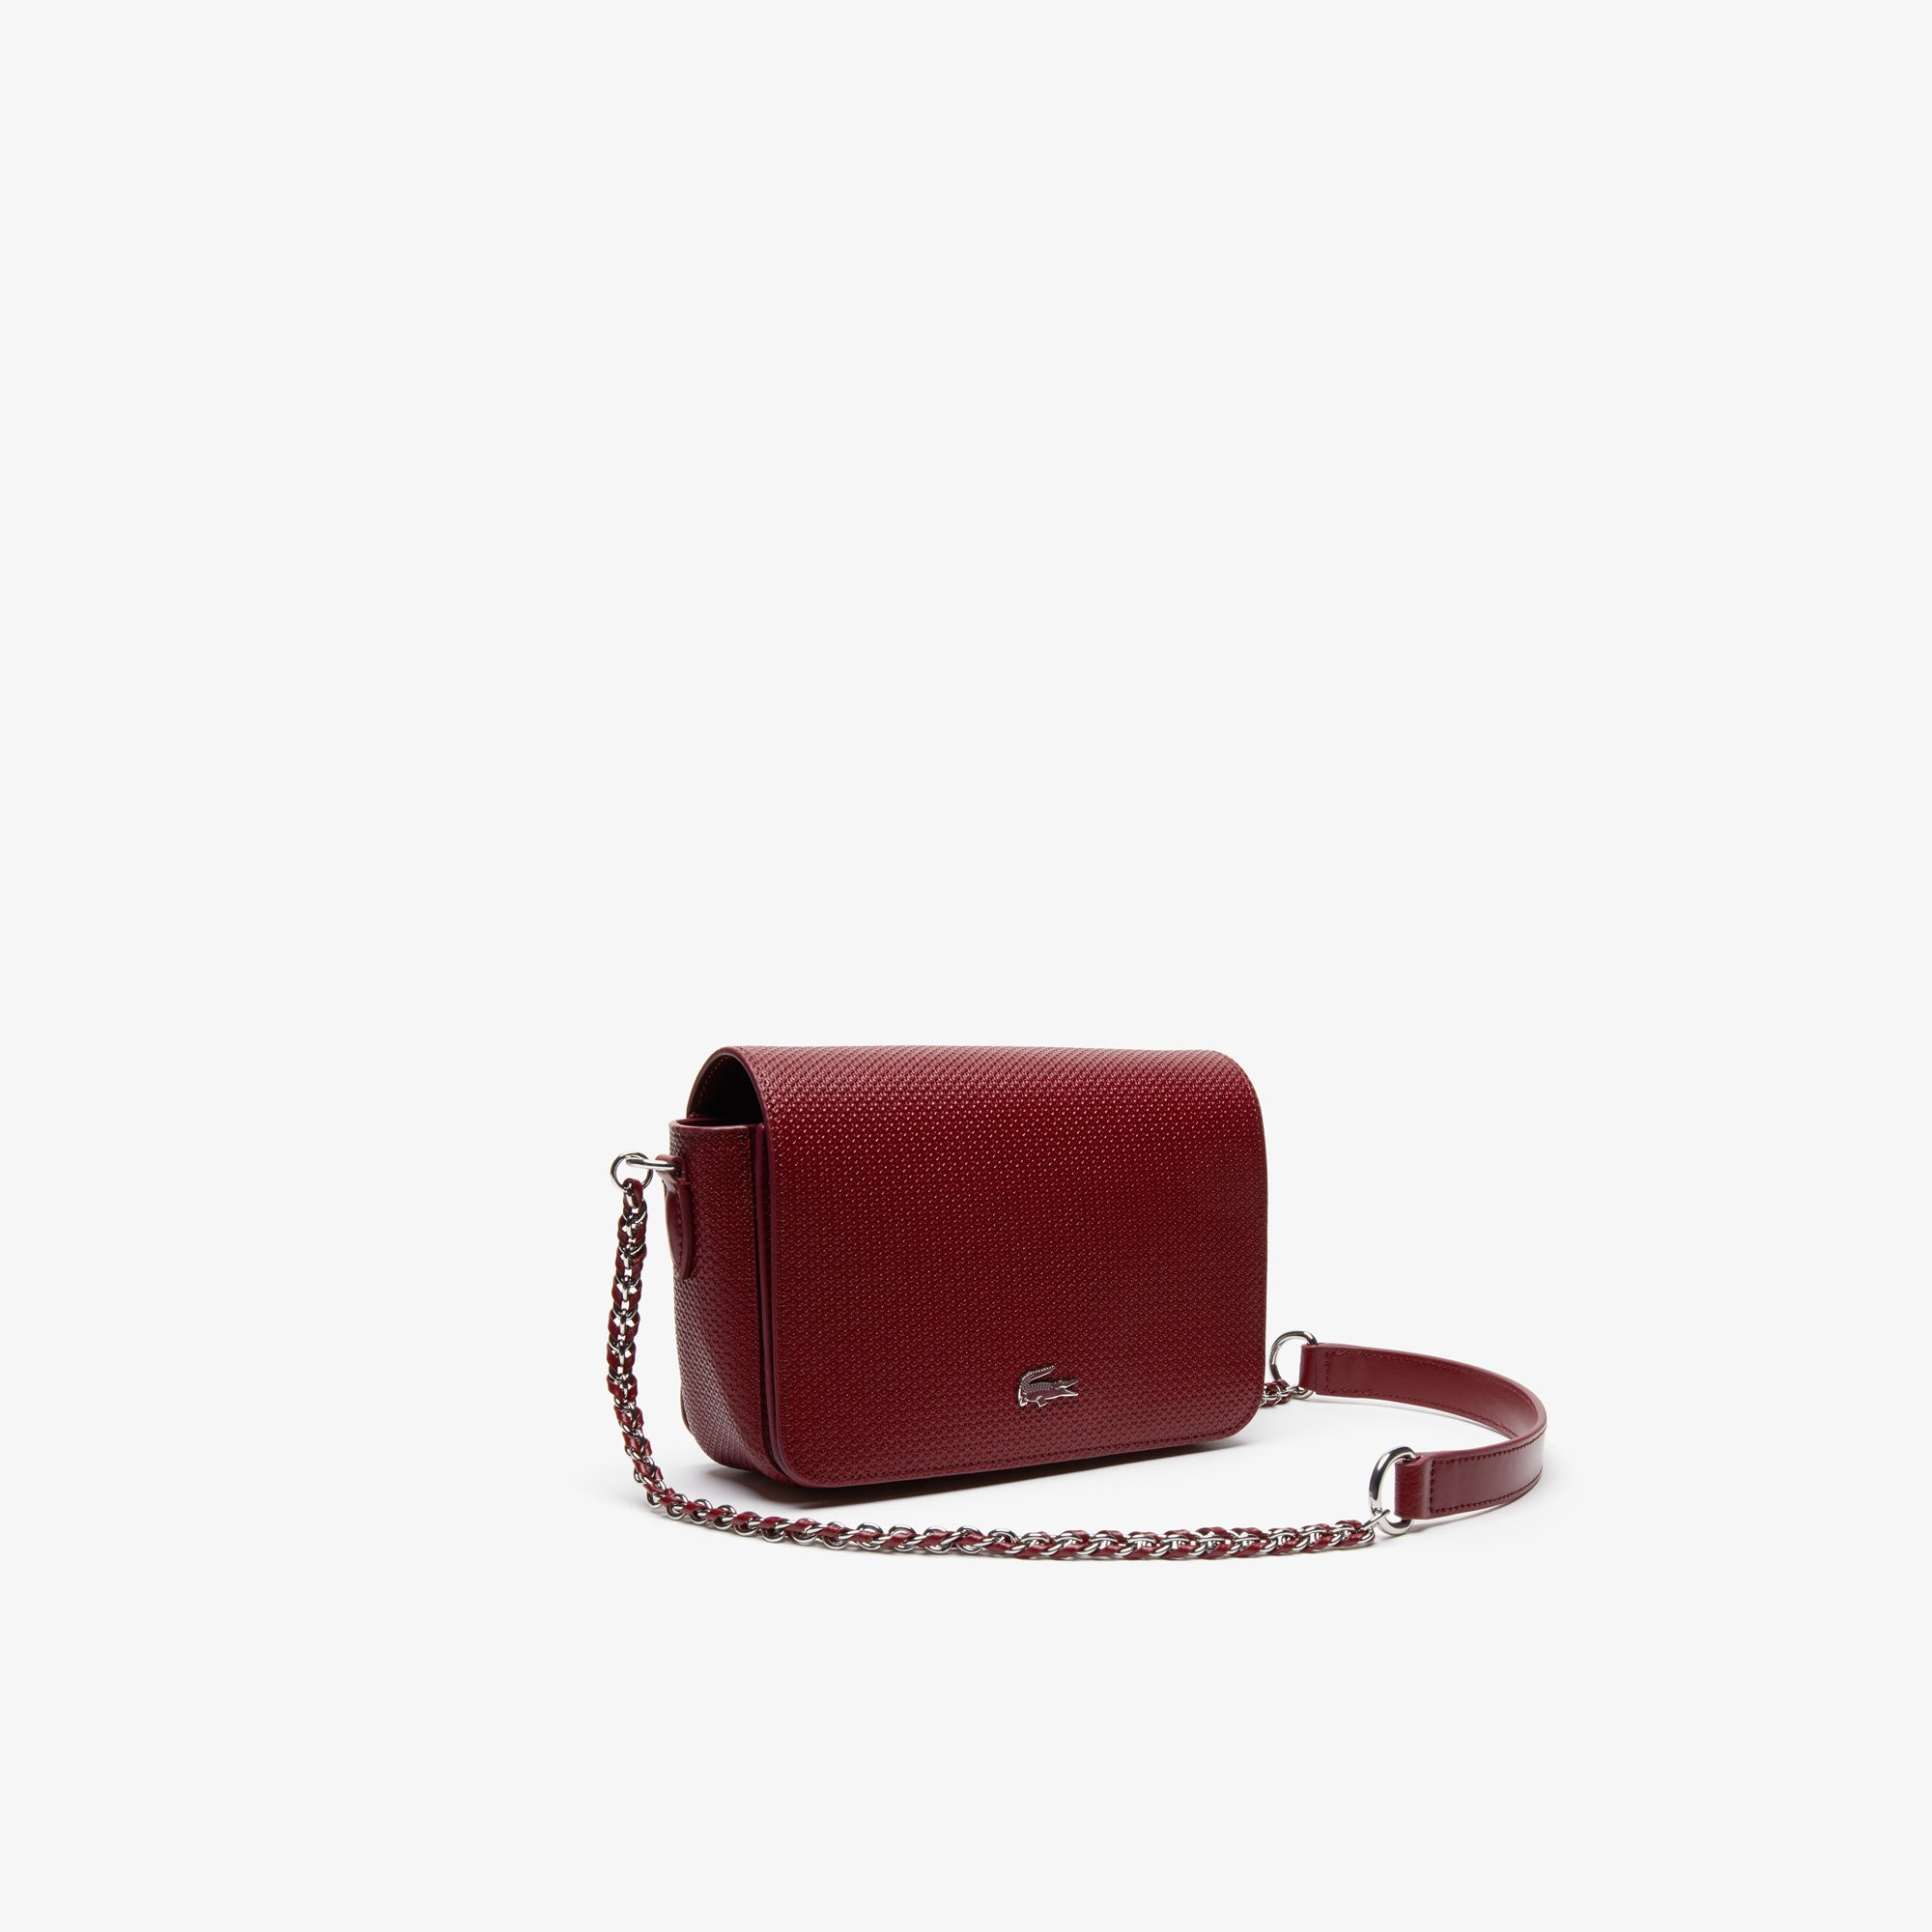 Women's Chantaco Piqué Leather Shoulder Bag- Twany Port